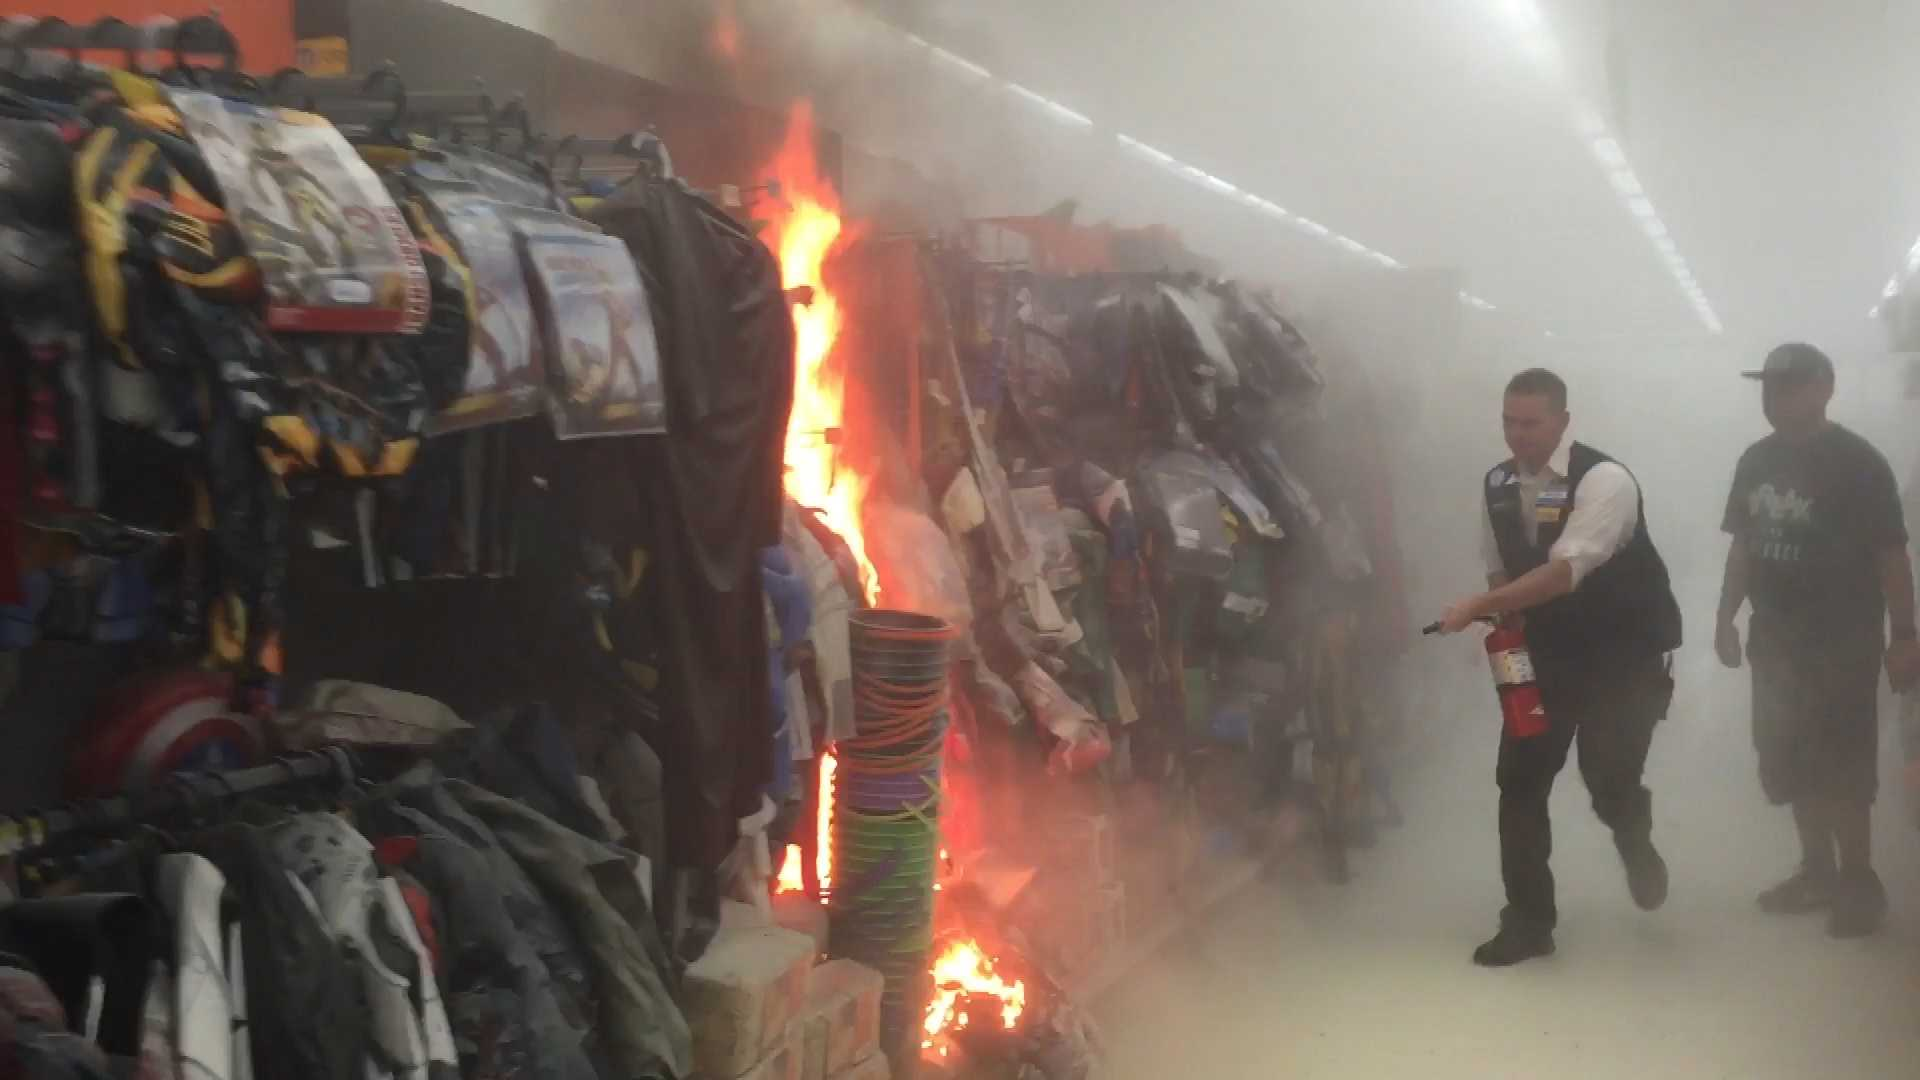 A Walmart employee uses a fire extinguisher to help contain a blaze set in the costume aisle of the store on Tuesday, Oct. 13, 2015.